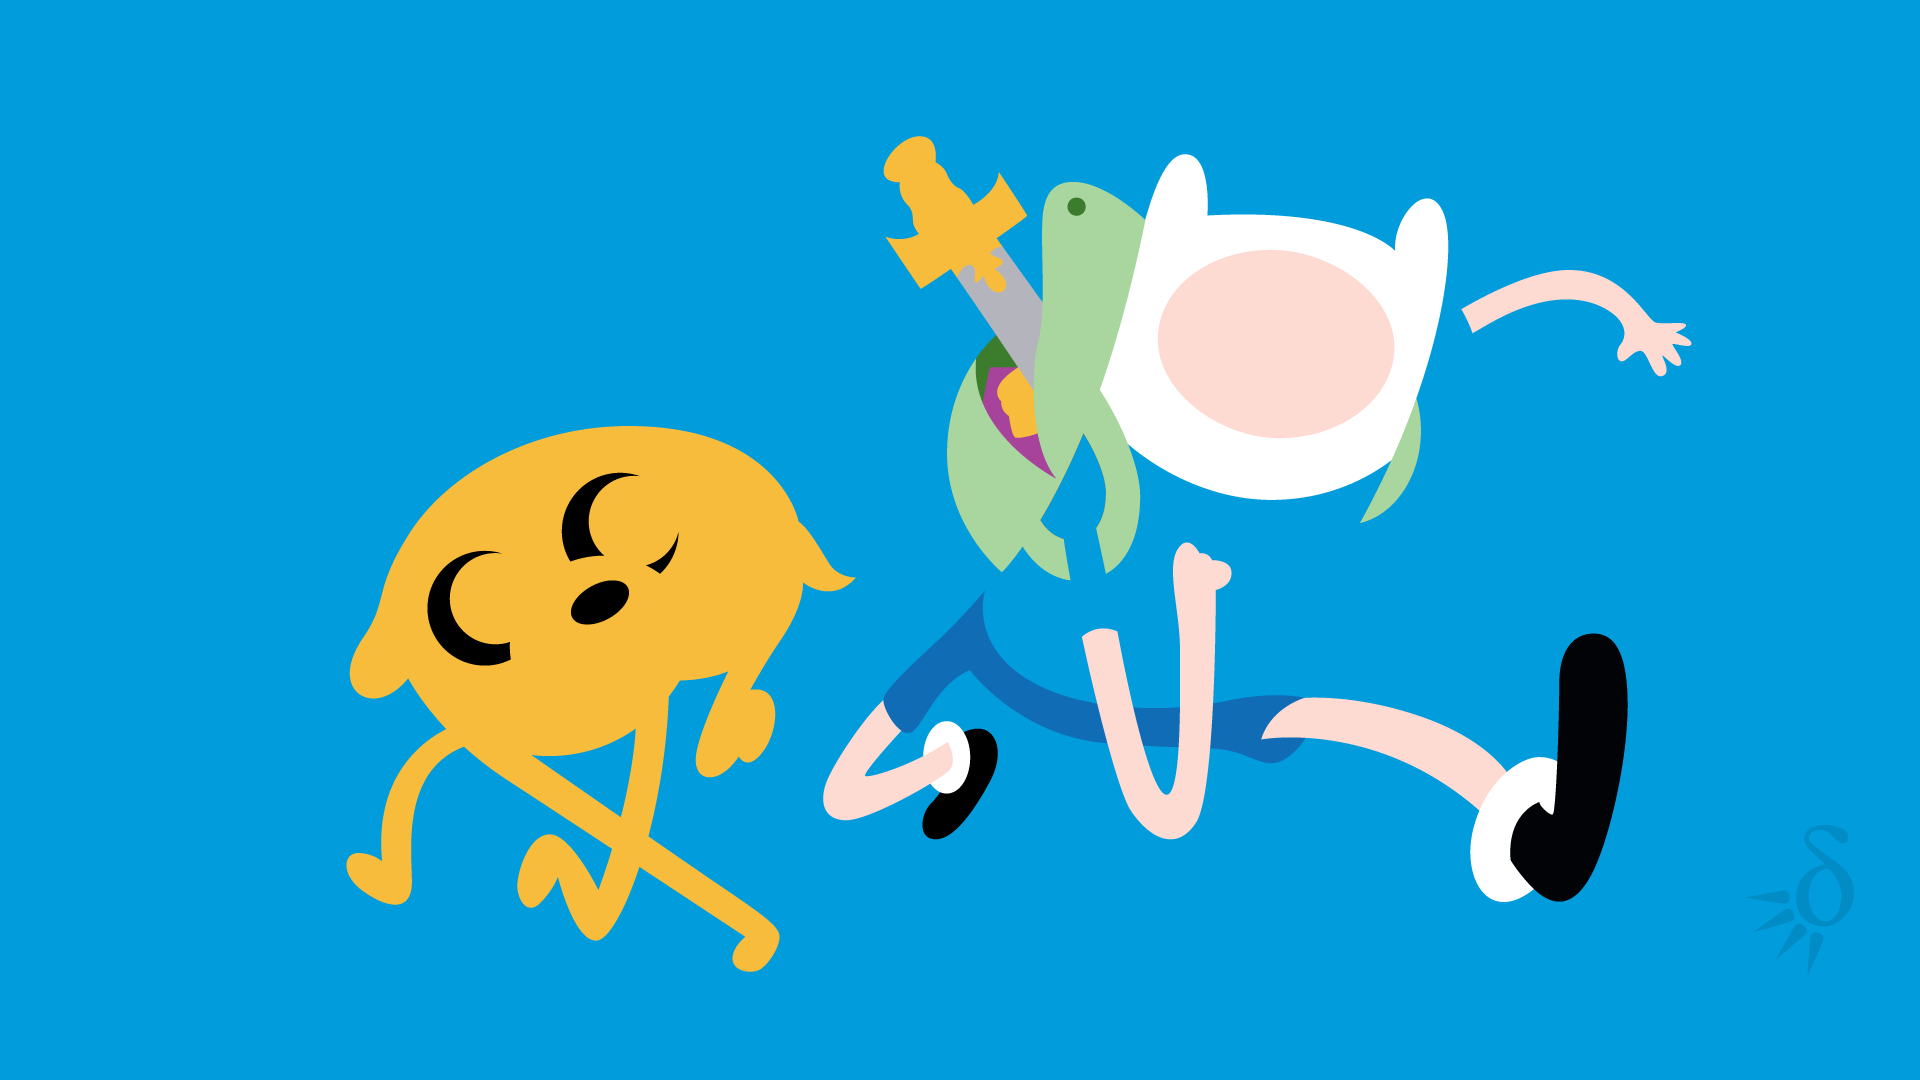 Adventure Time With Finn And Jake Wallpapers 1920x1080